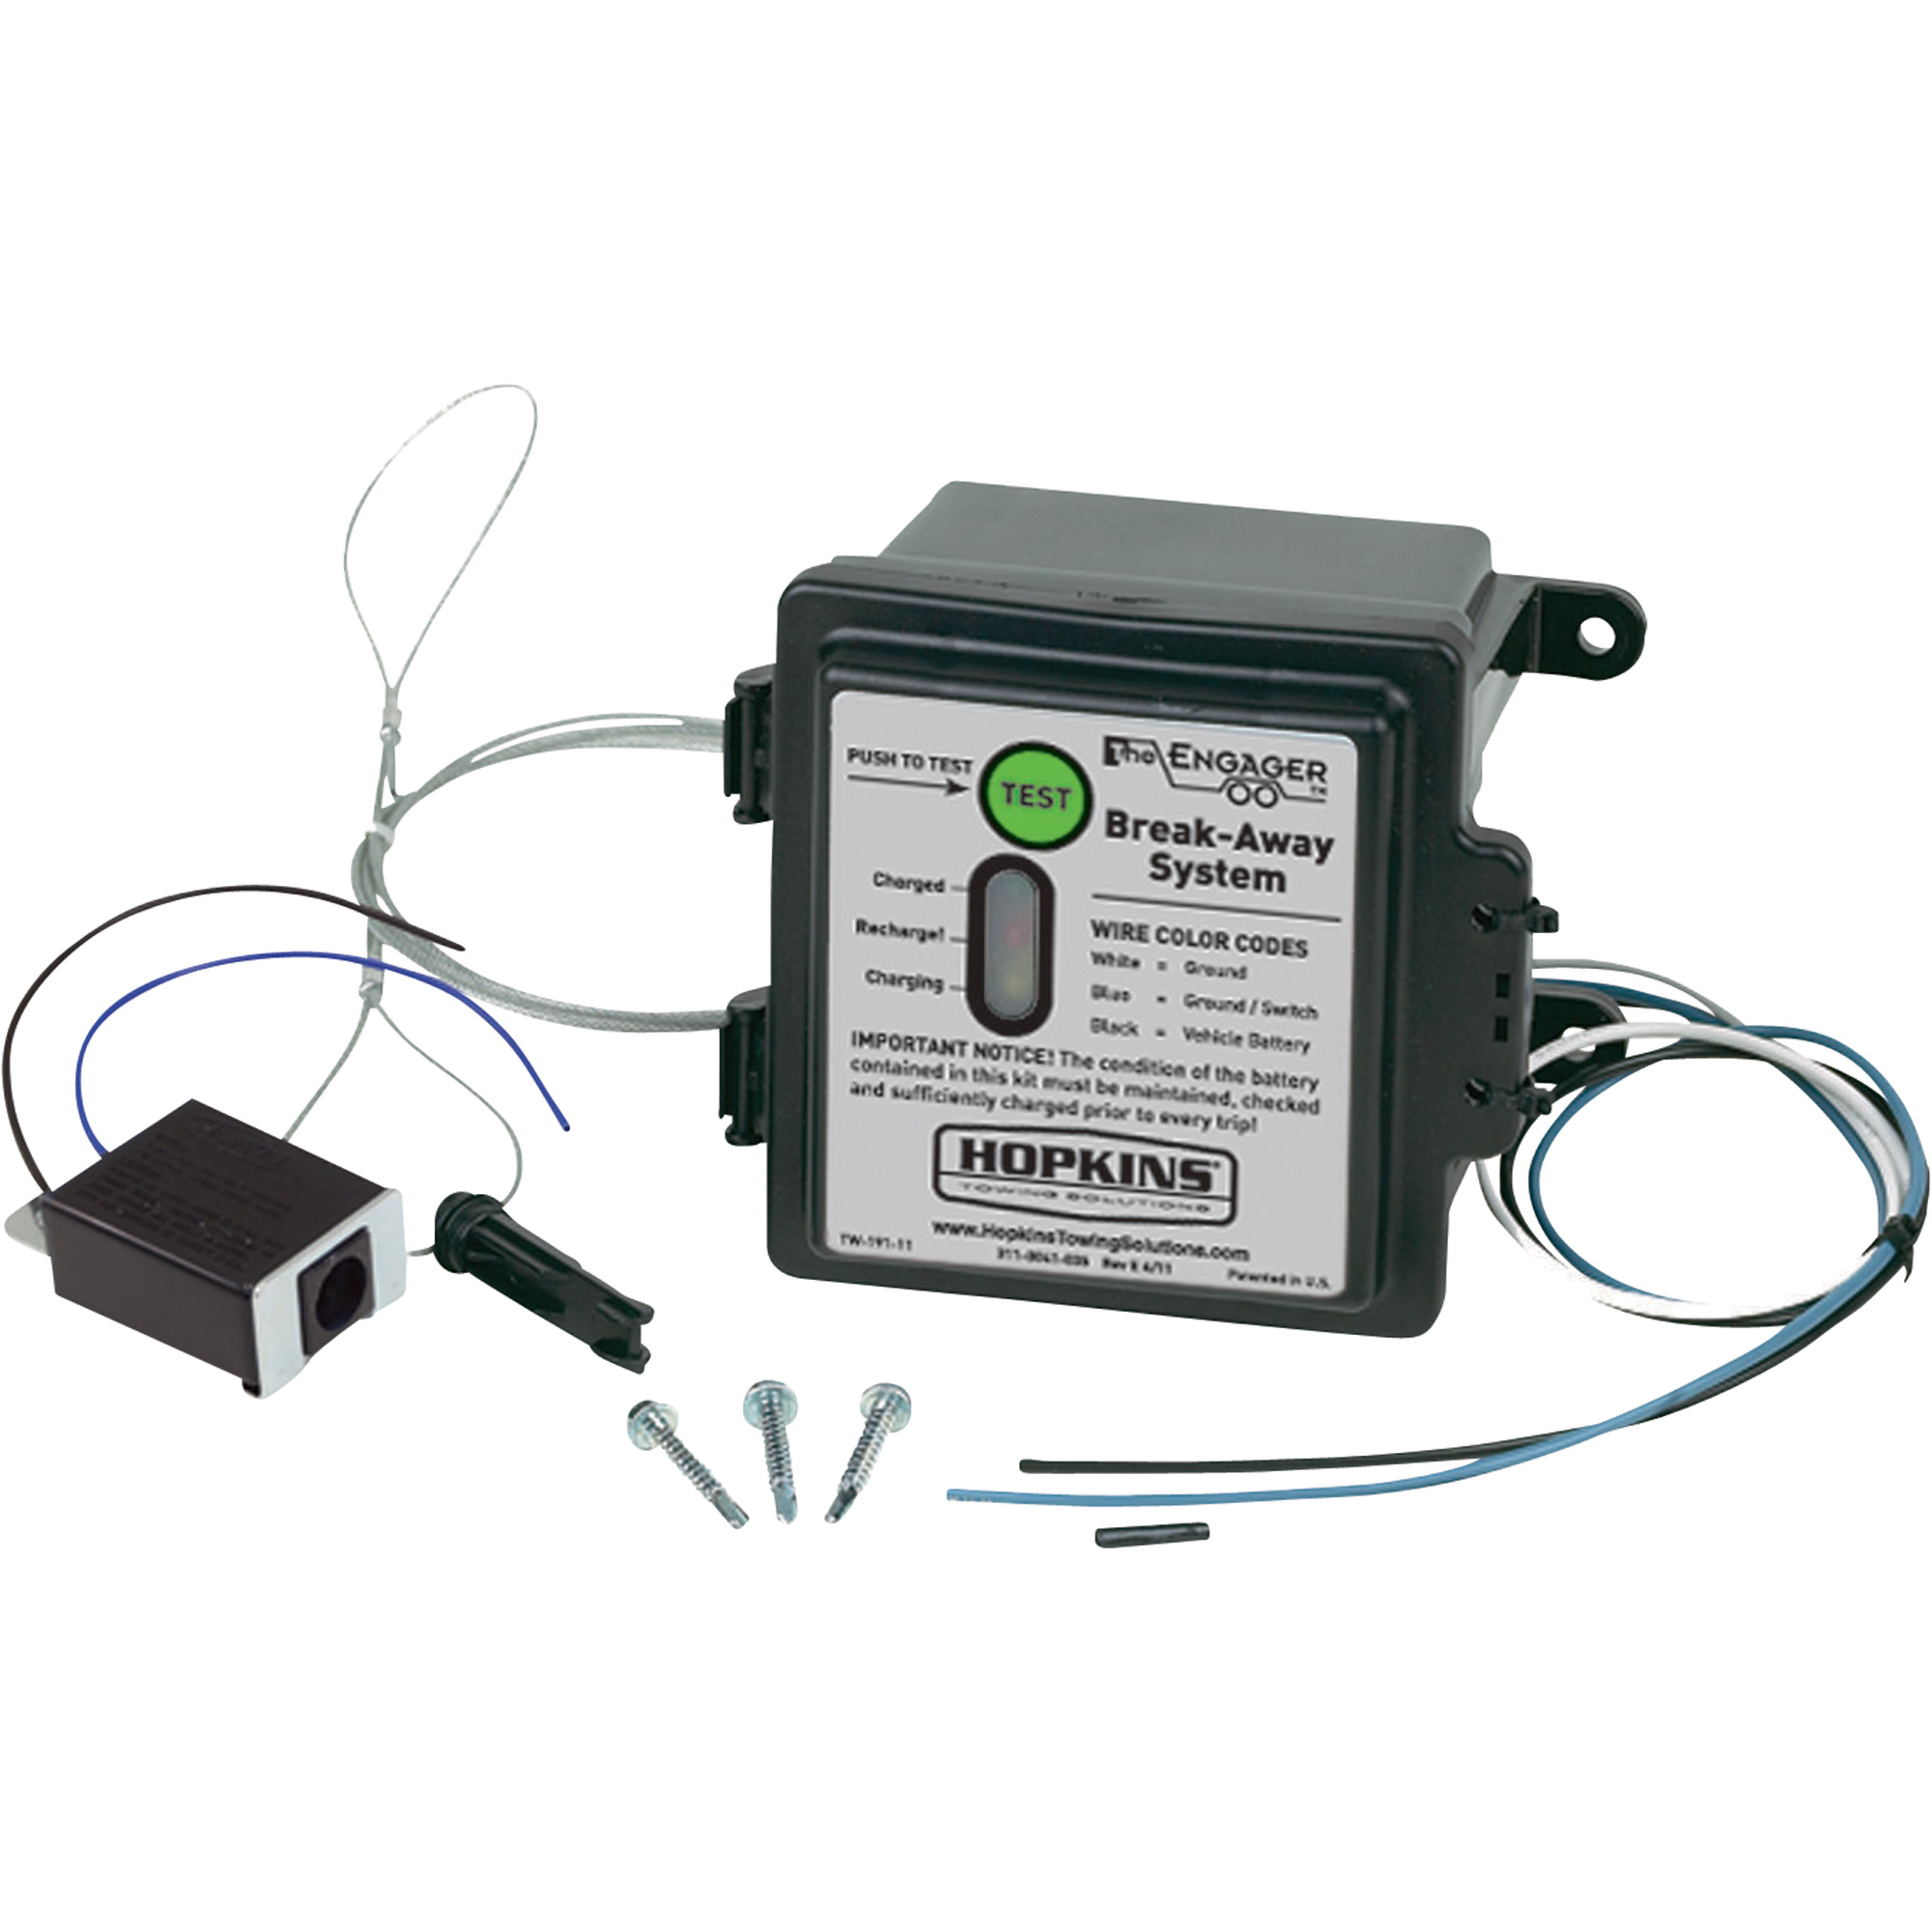 Hopkins Towing Solutions Engager Breakaway Kit With Led Test Light - Electric Trailer Breakaway Wiring Diagram